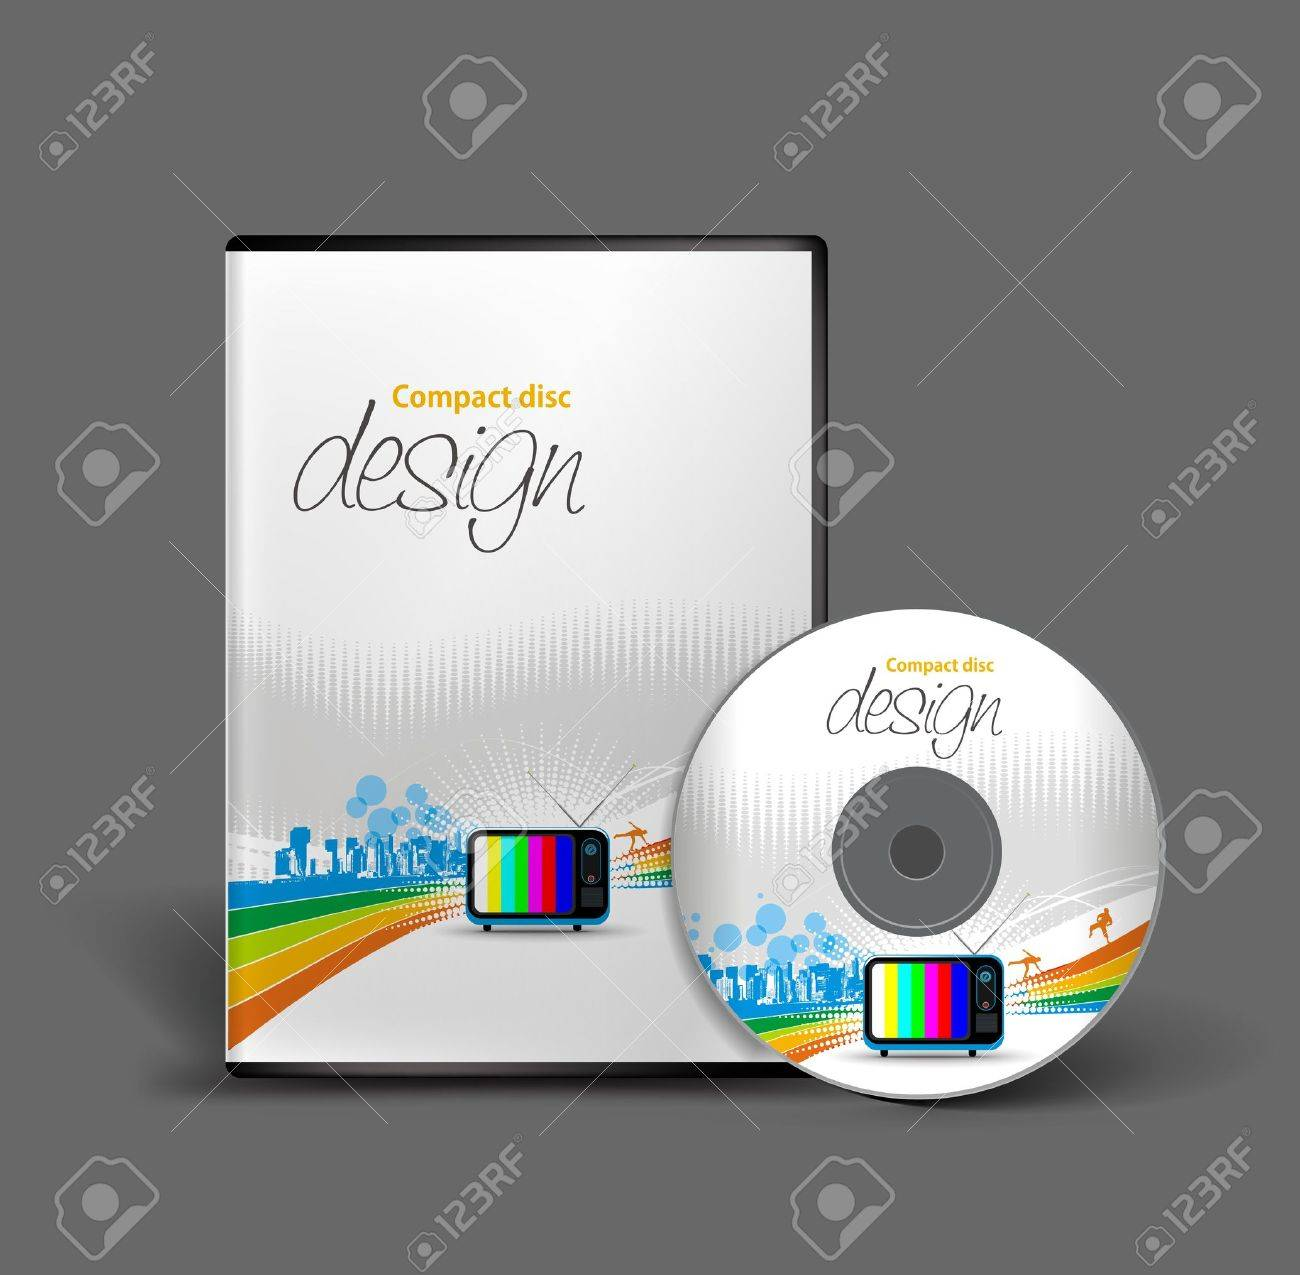 Cd cover design template with copy space. Stock Vector - 11193921